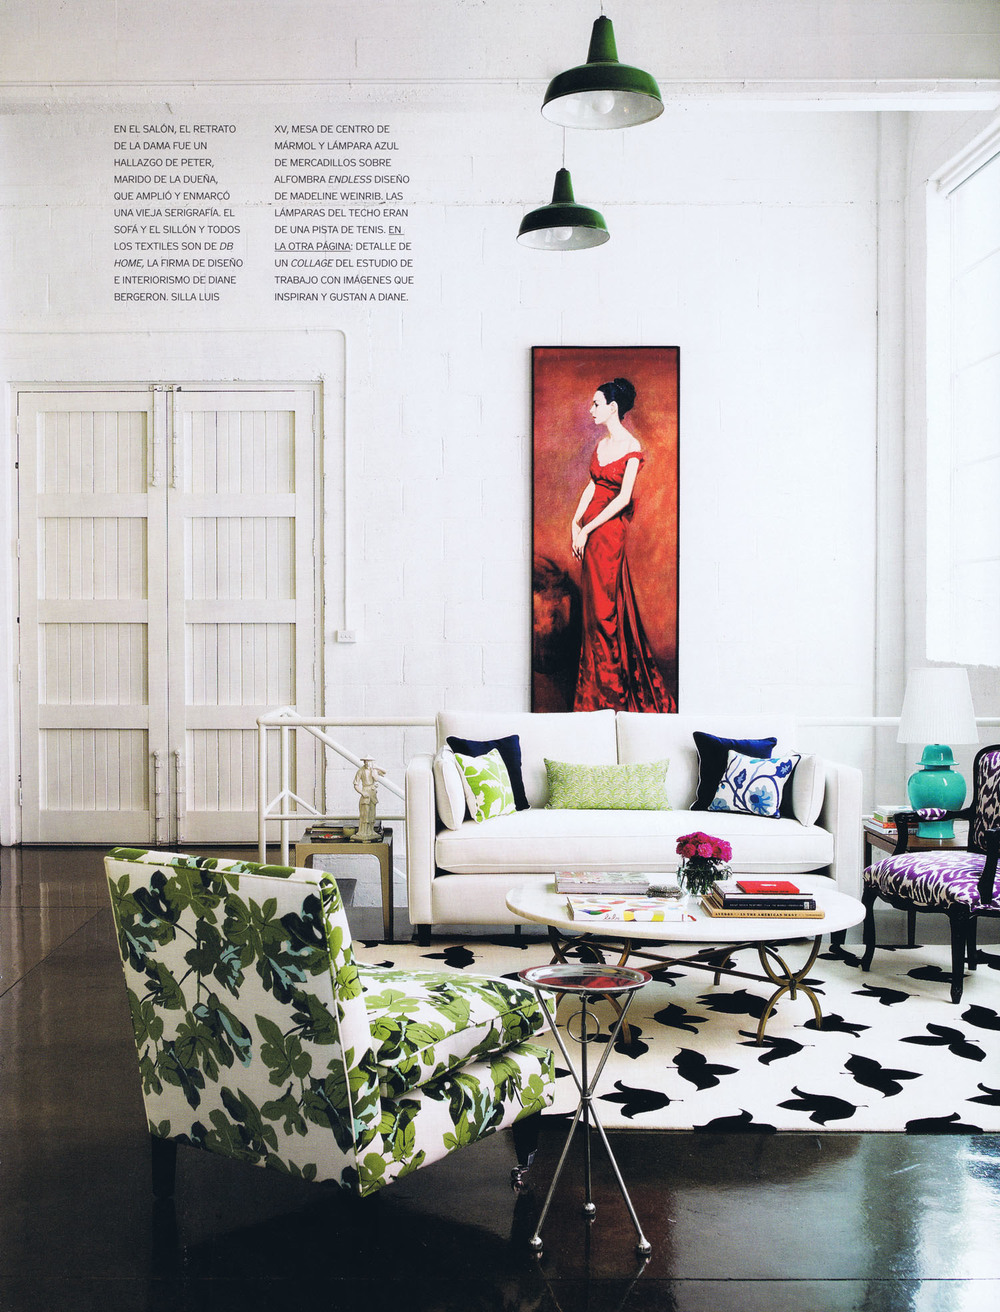 Architectural-Digest-Spain-June-2011_Diane-Bergeron_02.jpg